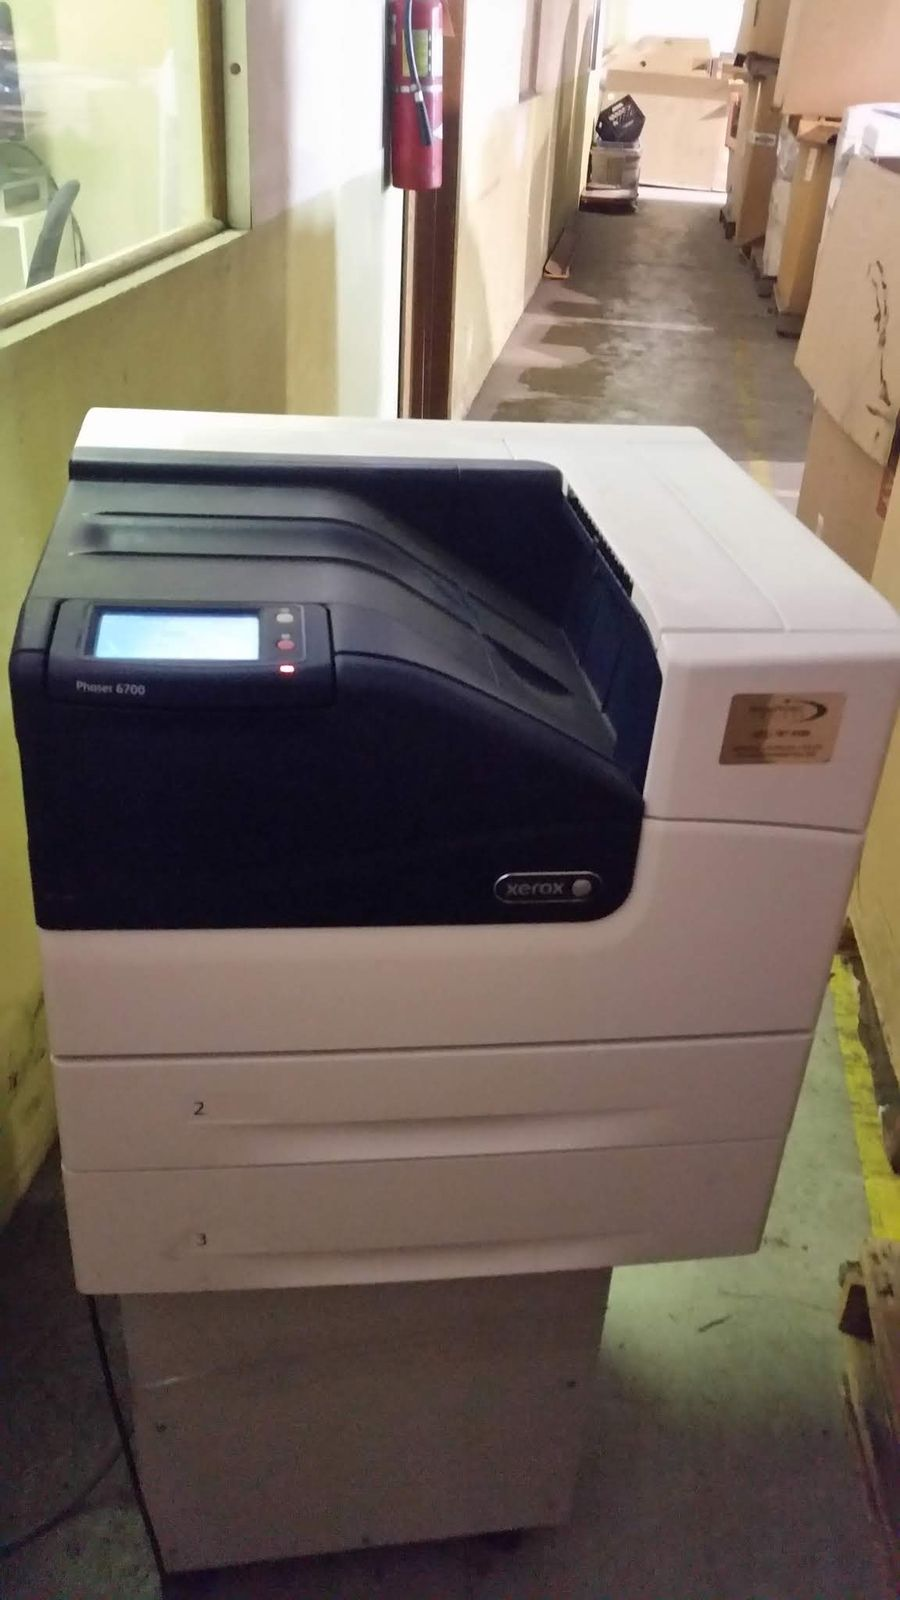 Xerox Phaser 6700 Dn Color Laser Printer With Stand Refurbished